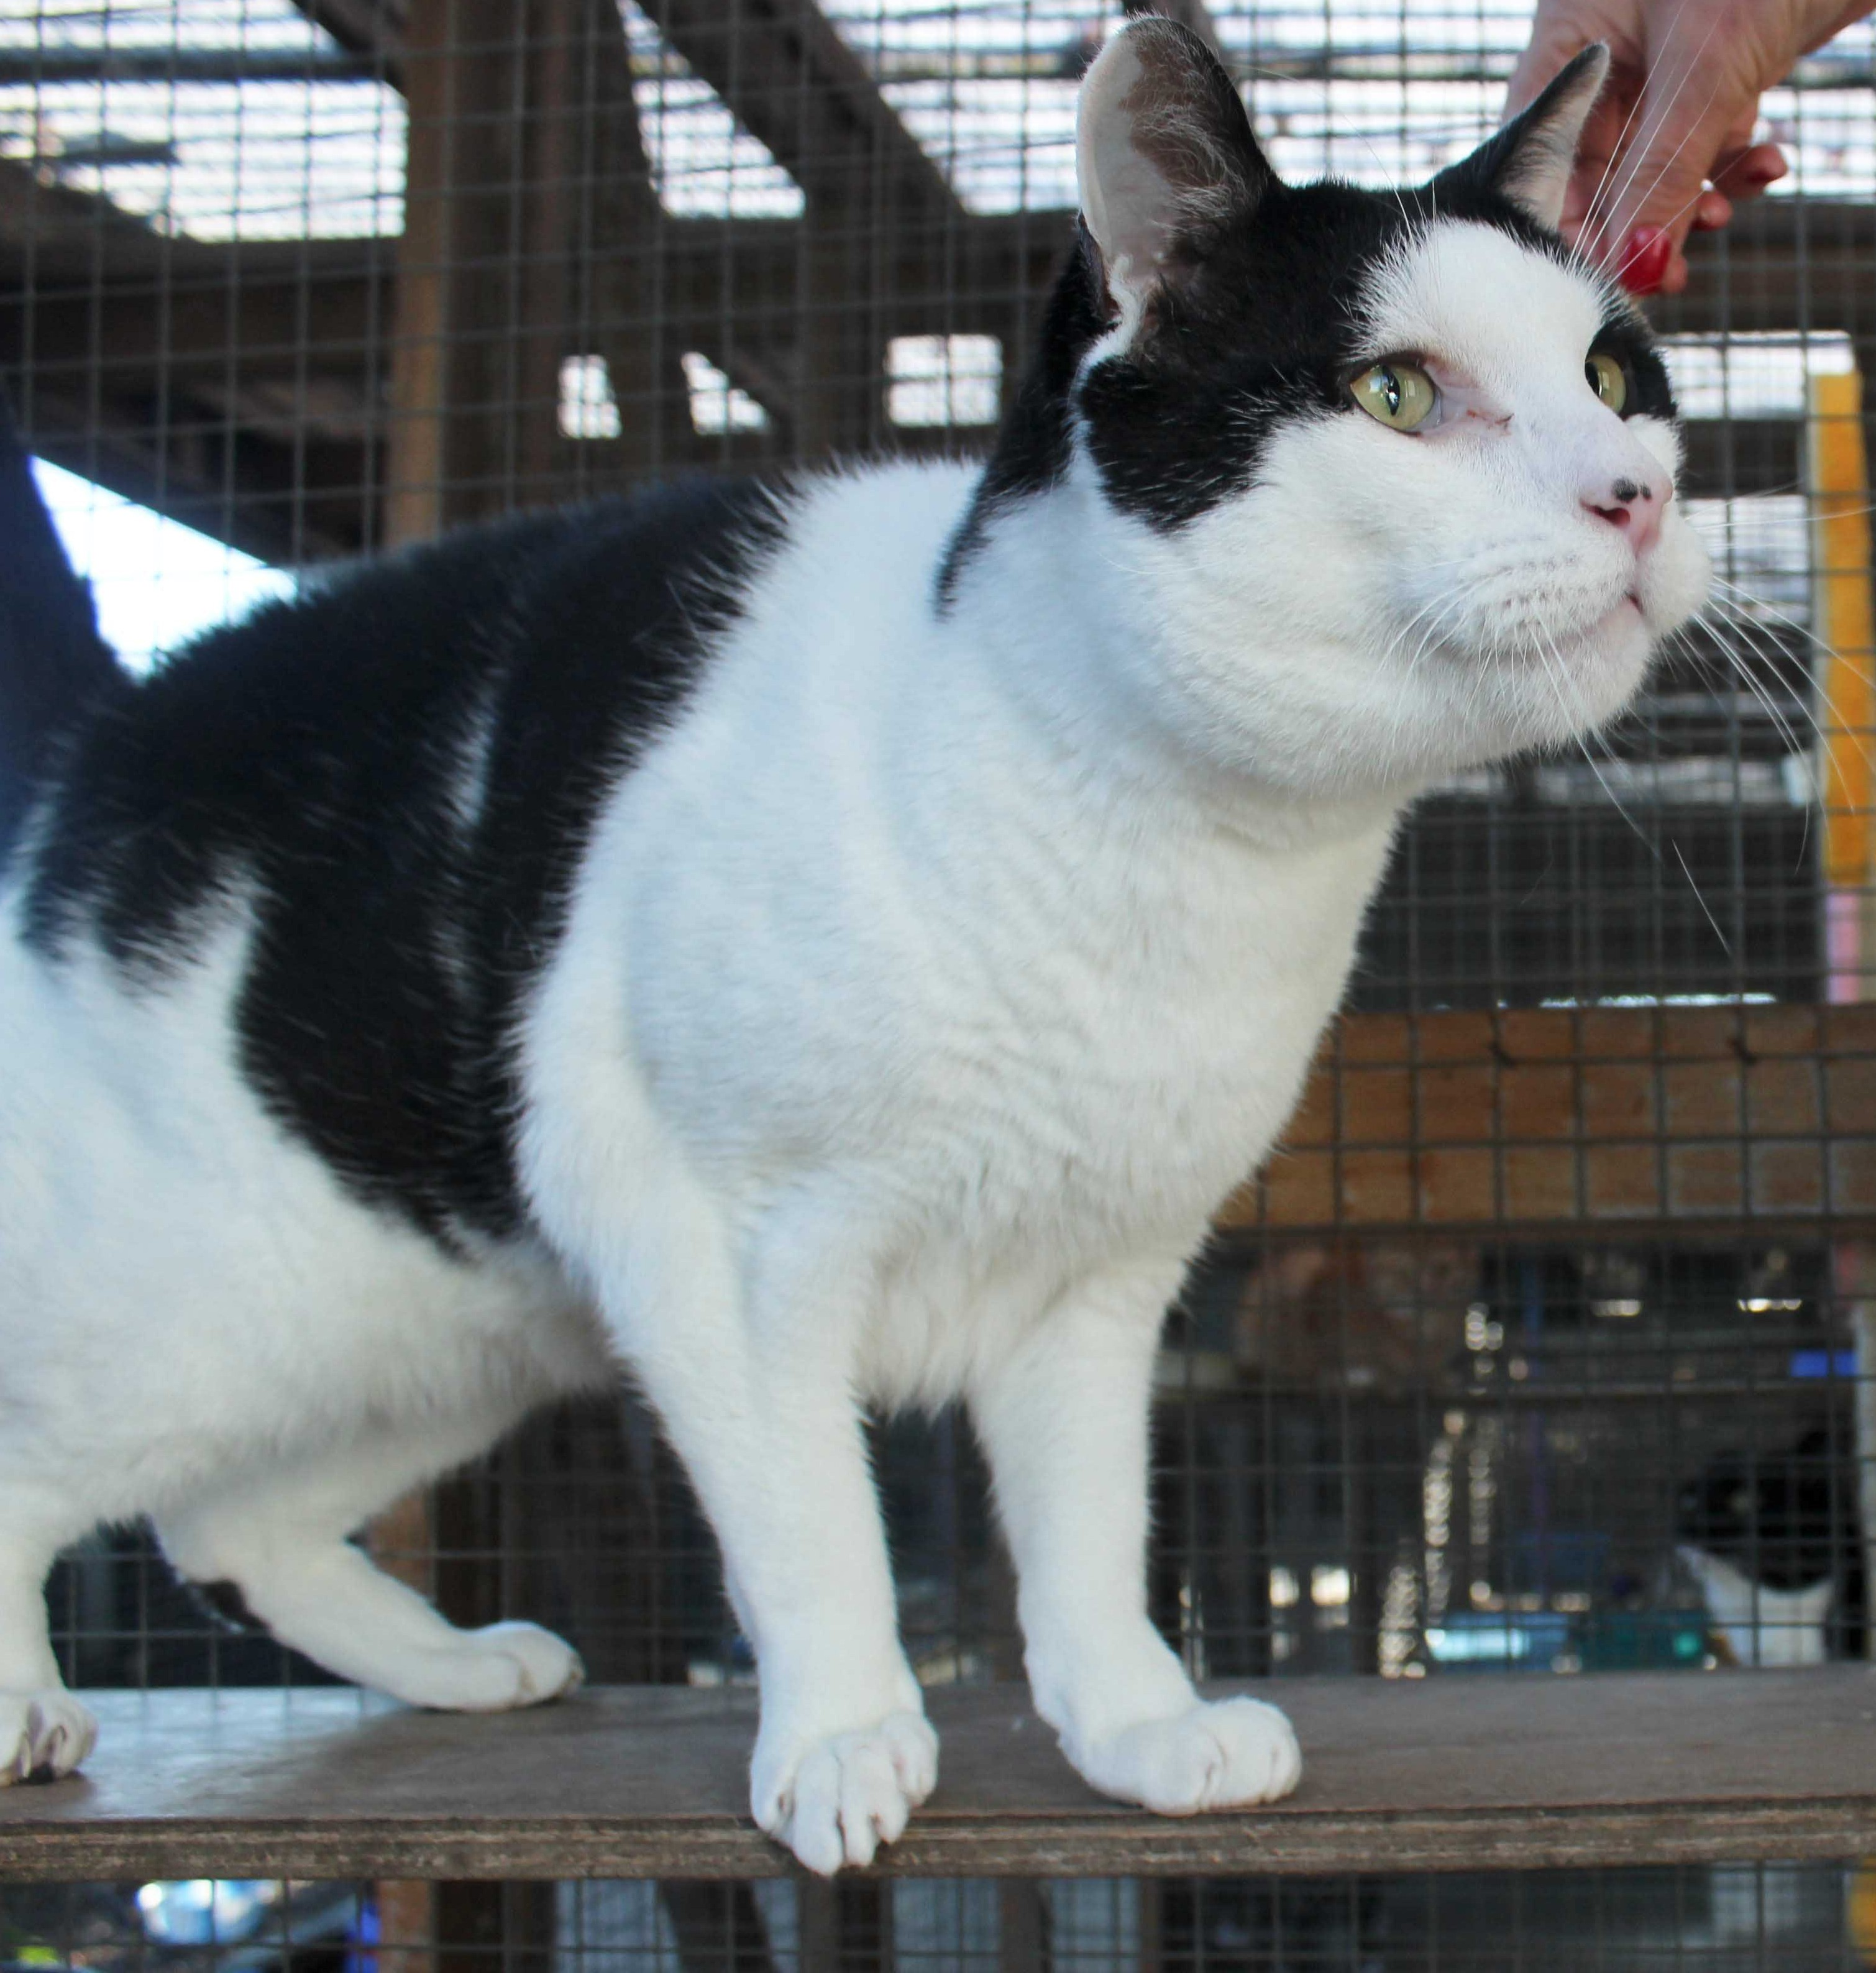 Britain's tallest cat Judas looks down on a fellow moggy at the rescue centre where he is staying